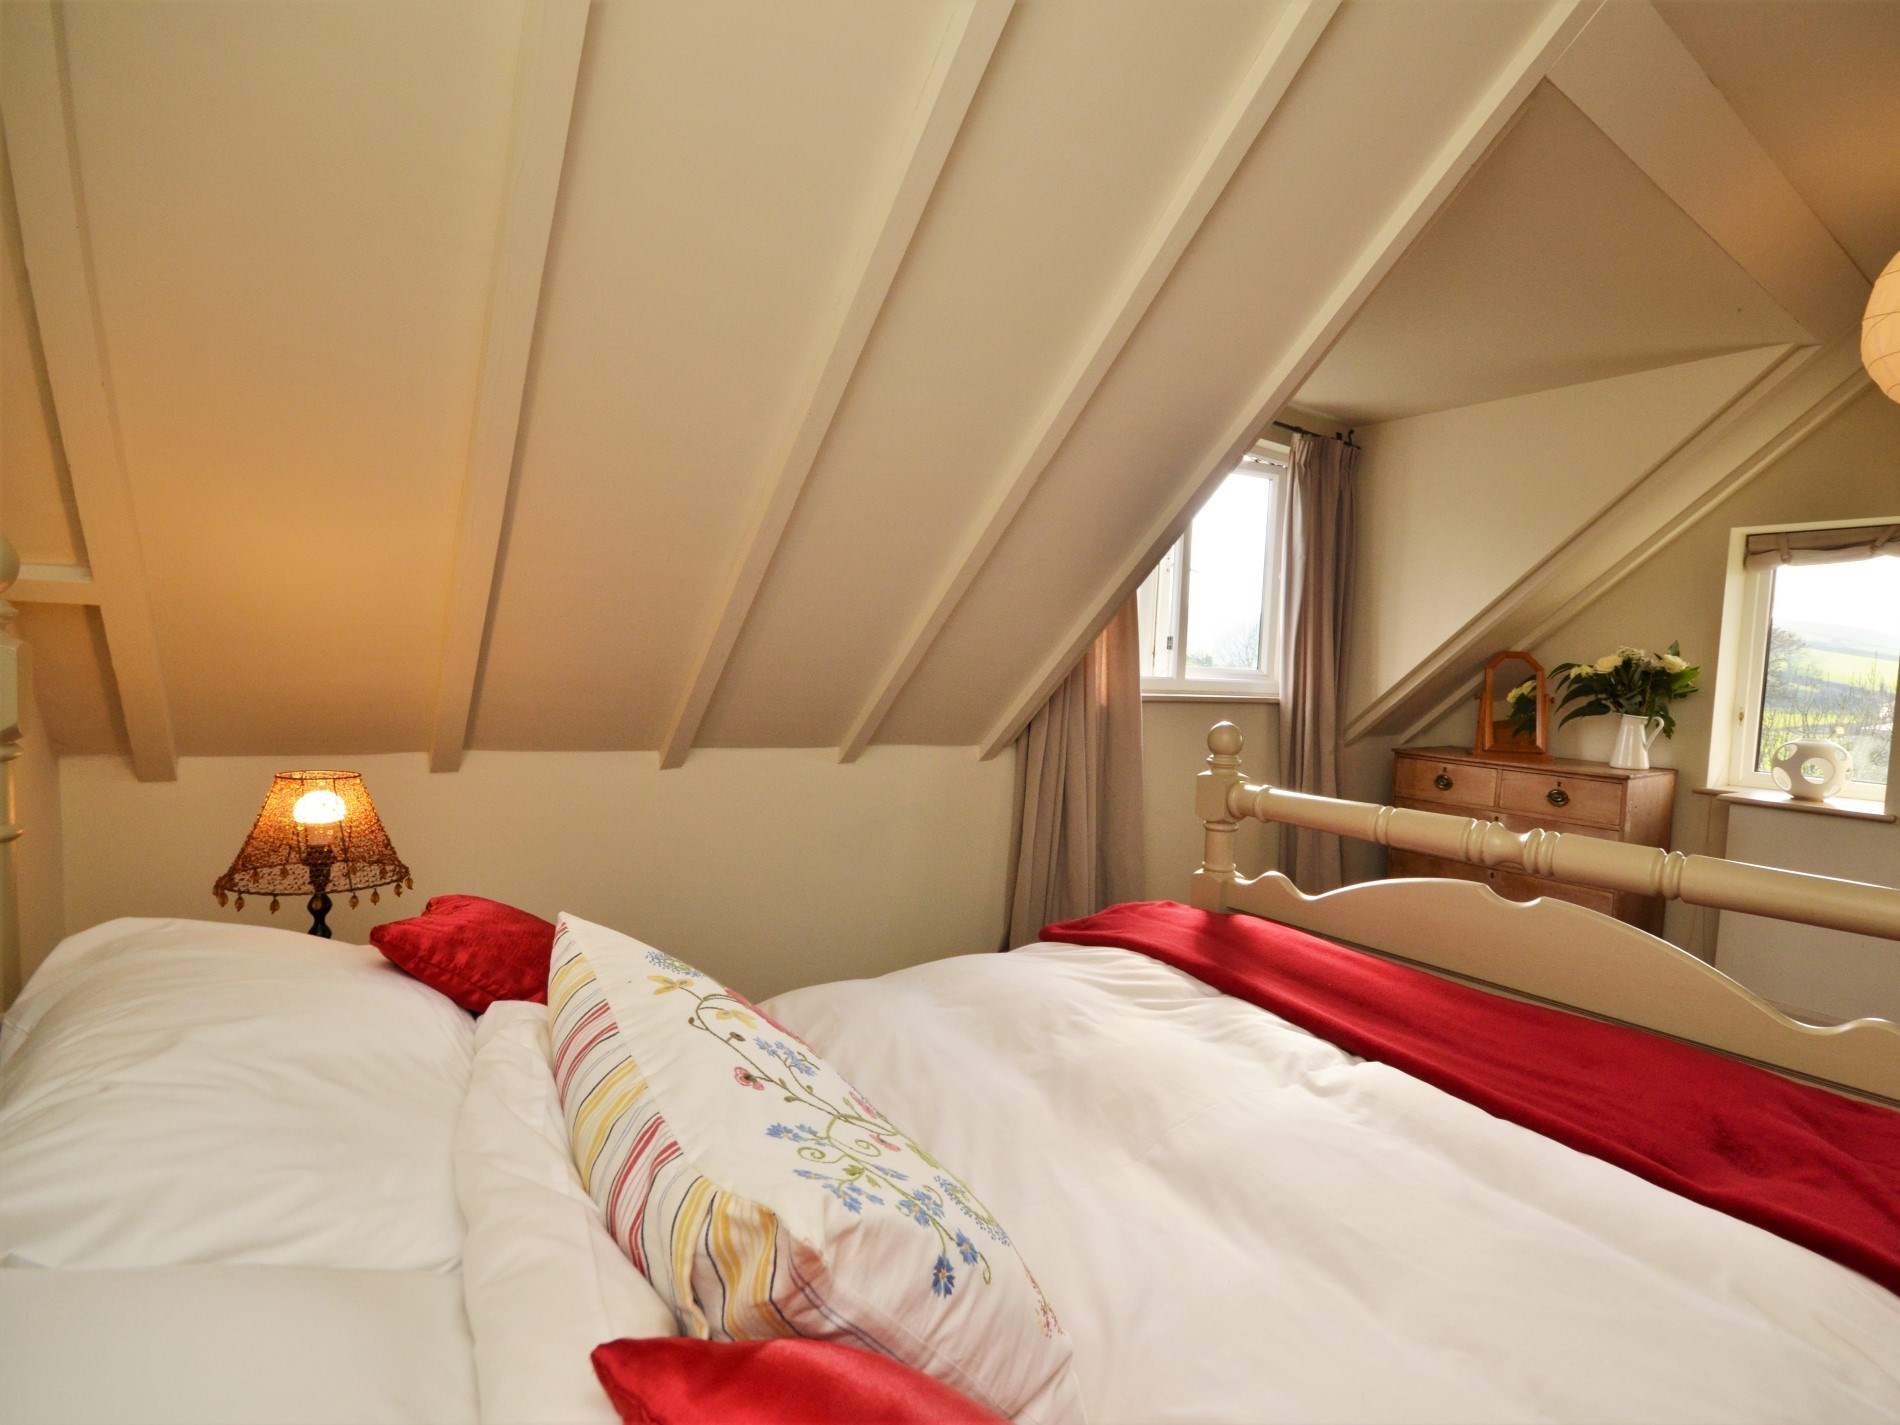 Spacious double room wiht a view